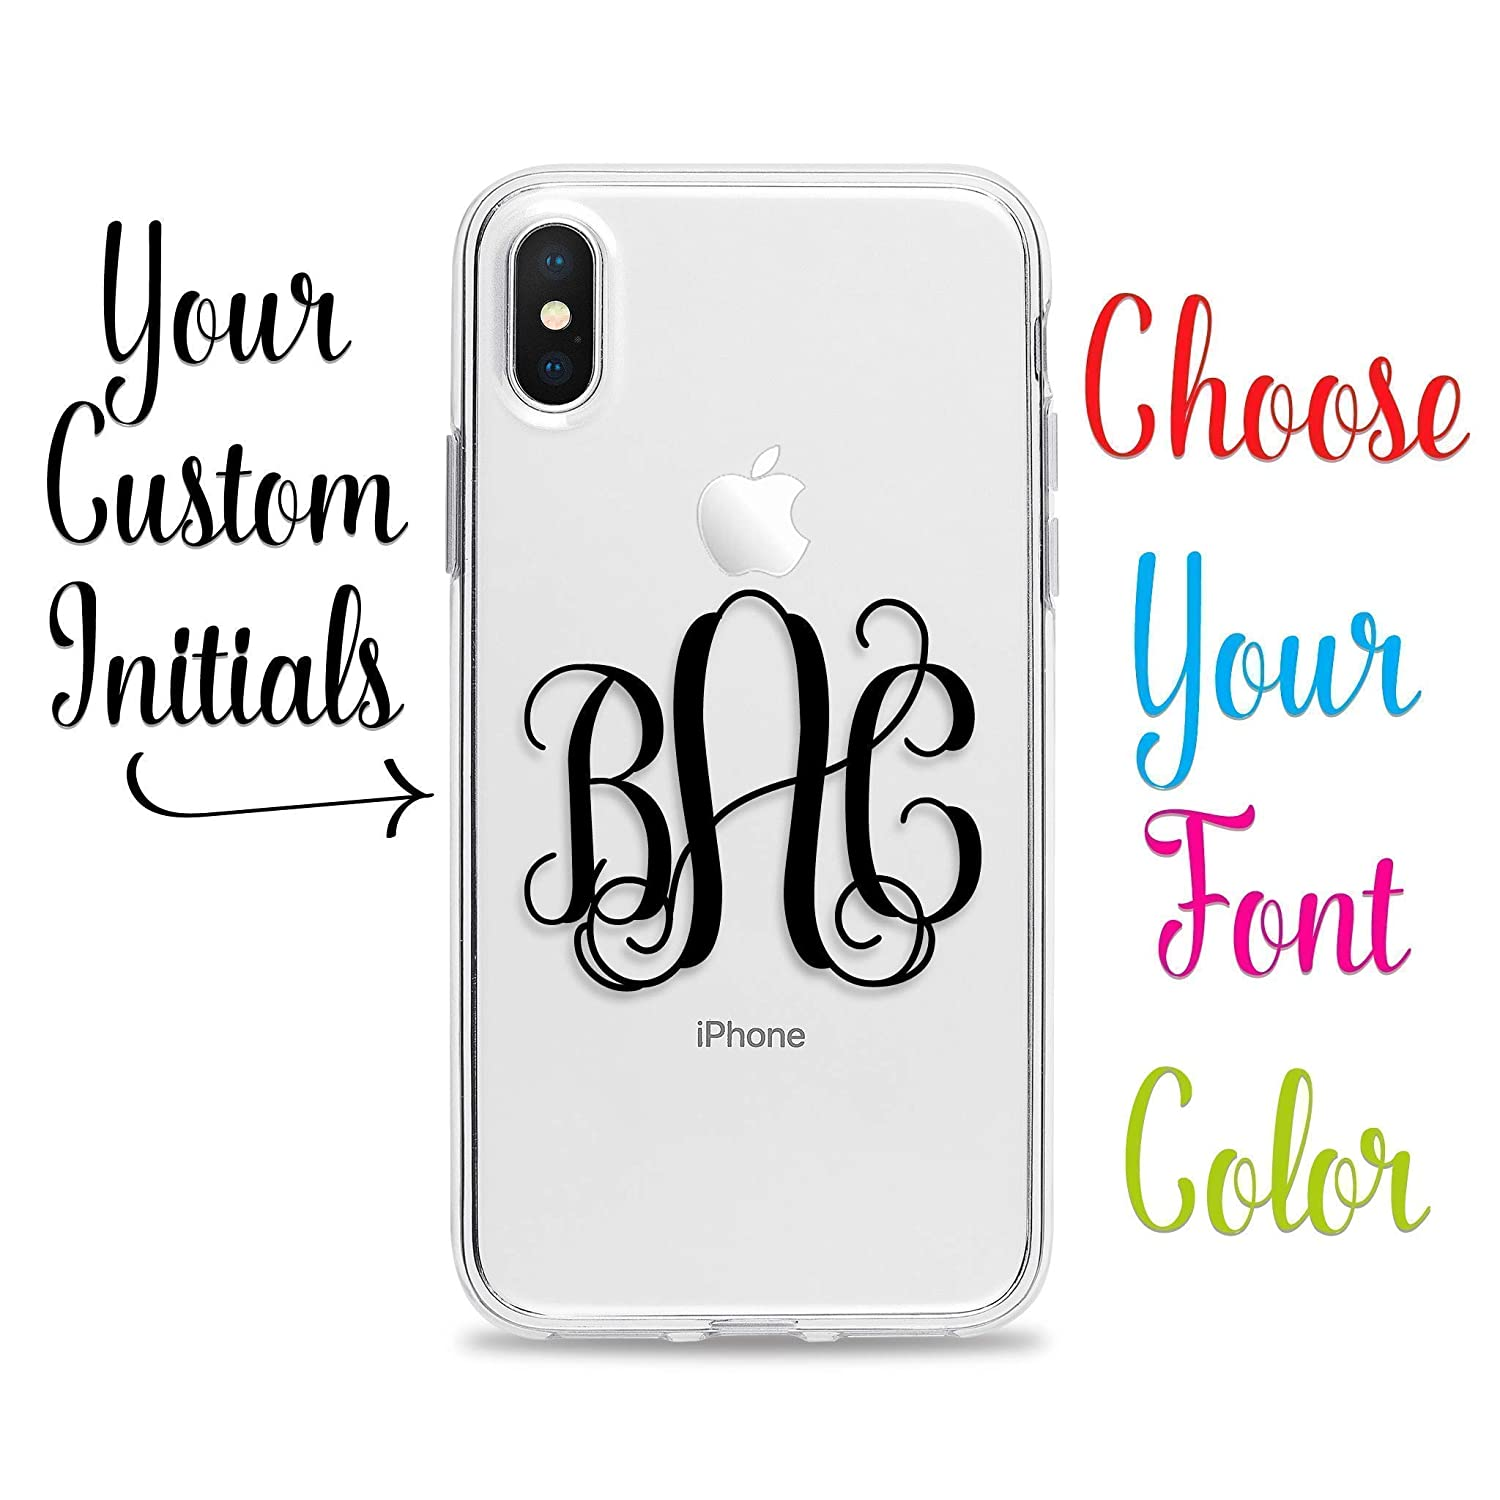 Clear Phone Case with Monogram for iPhone XS X 10 8 Plus 7 6s 6 SE 5s 5 Samsung Galaxy S9 S8 S7 edge S6 Personalized Custom Initials